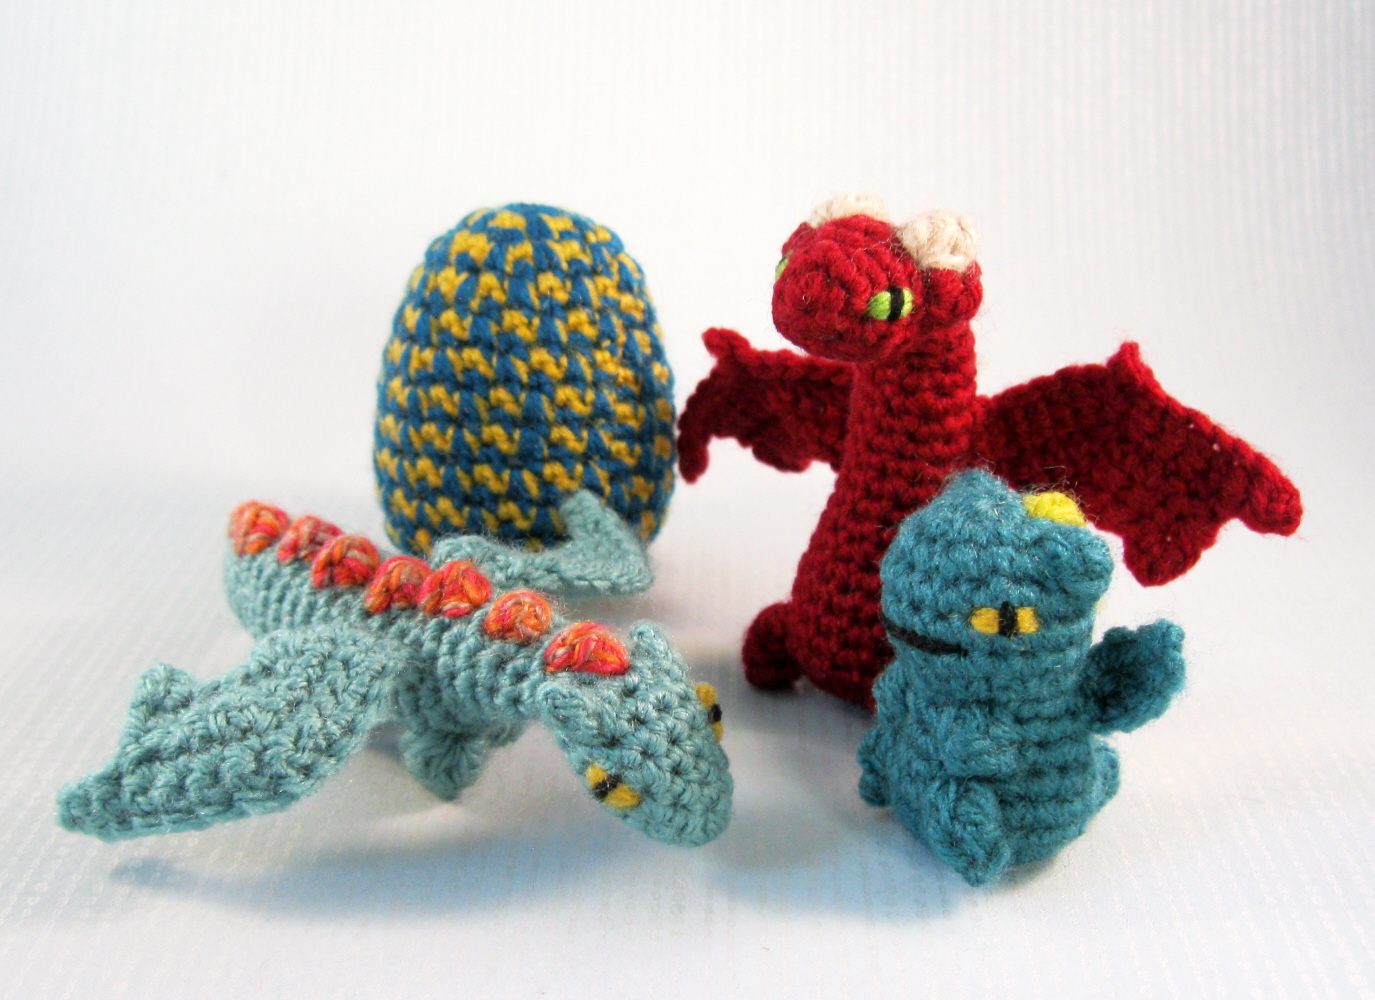 20 Amigurumi Dragon Free Crochet Patterns • Page 2 of 3 • DIY How To | 1000x1375